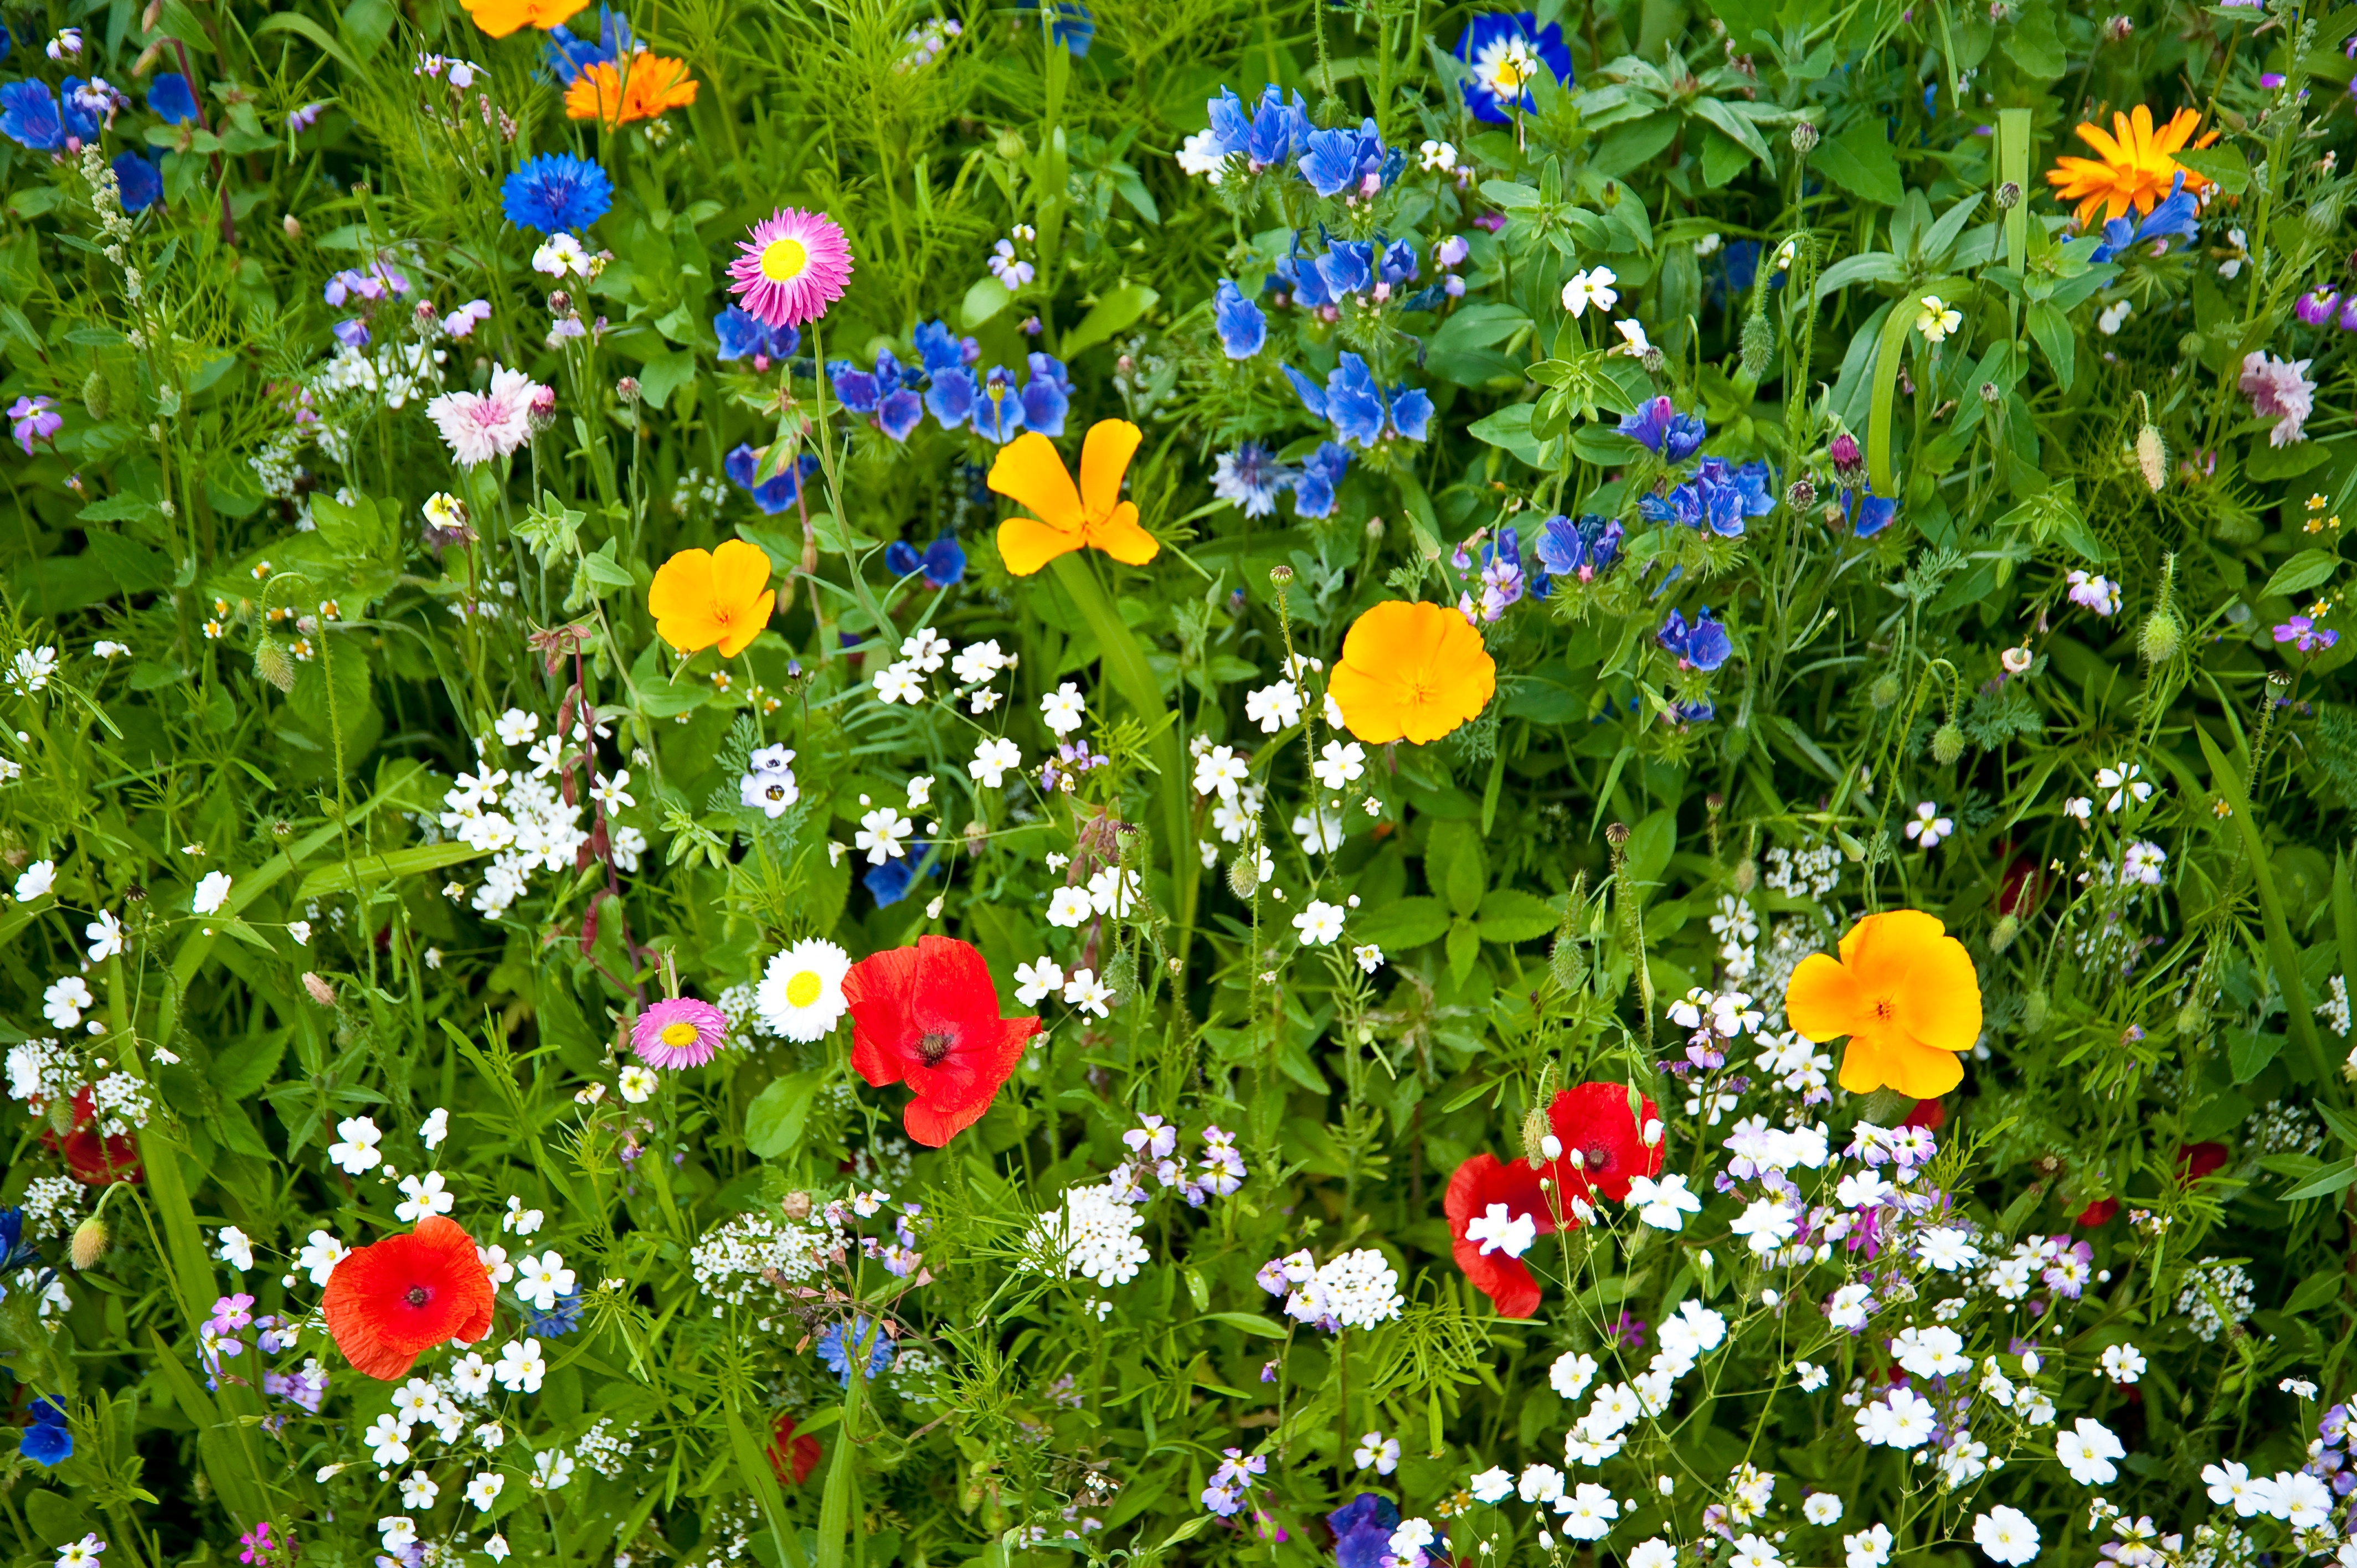 Wildflowers in an Article About Grant Professional Appreciation Day.